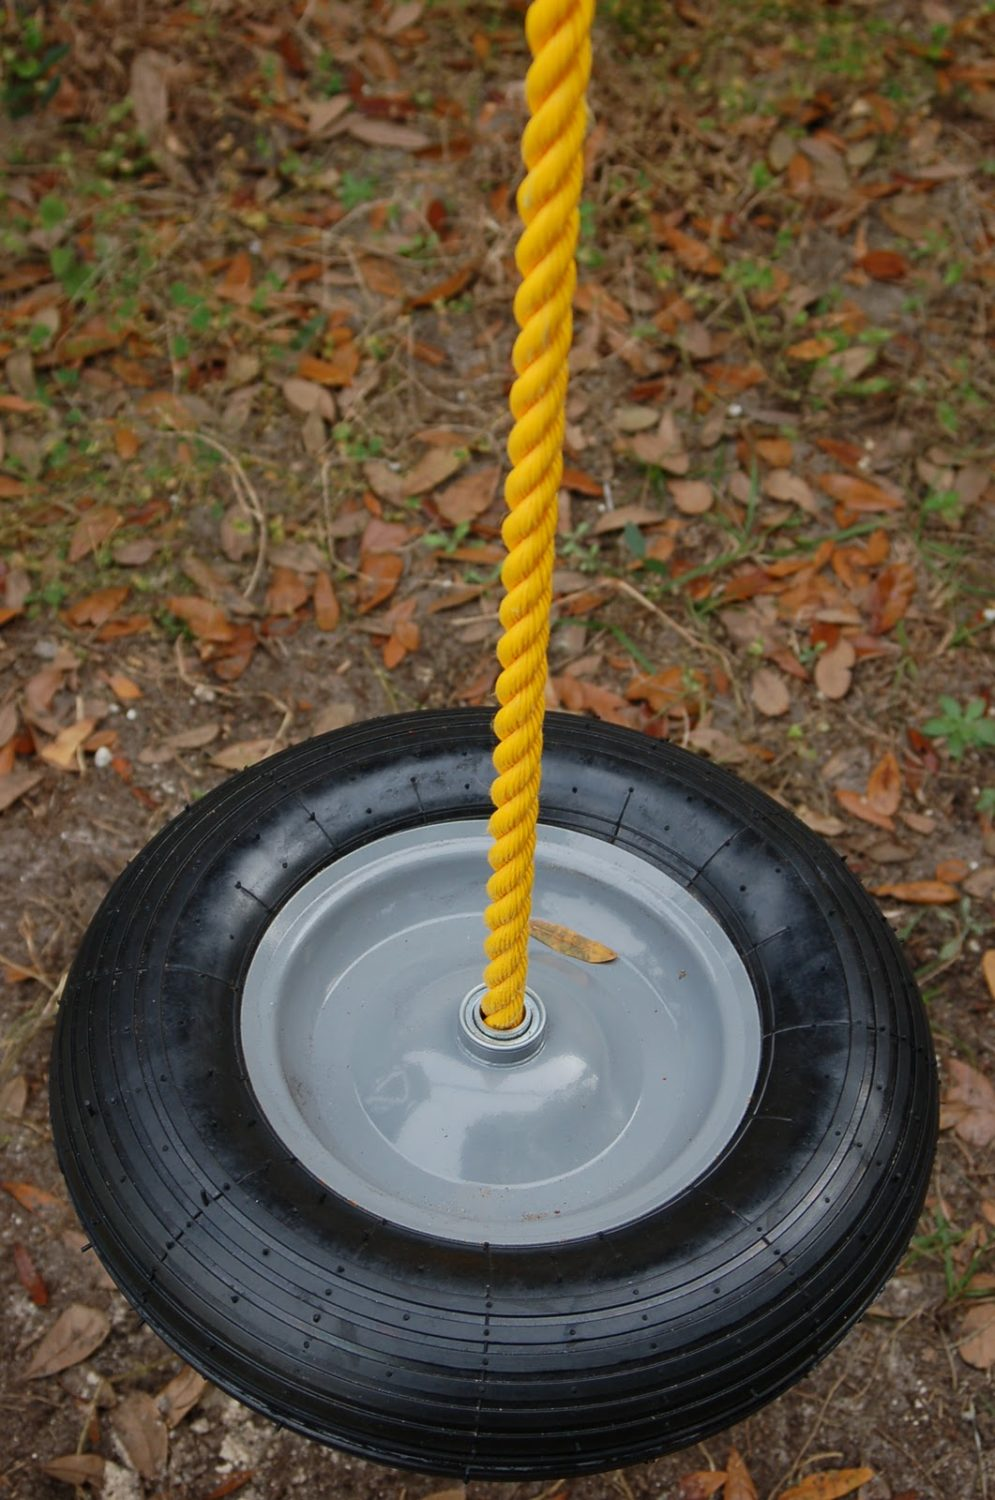 19 free diy tire swing instructions how to make tutorials. Black Bedroom Furniture Sets. Home Design Ideas